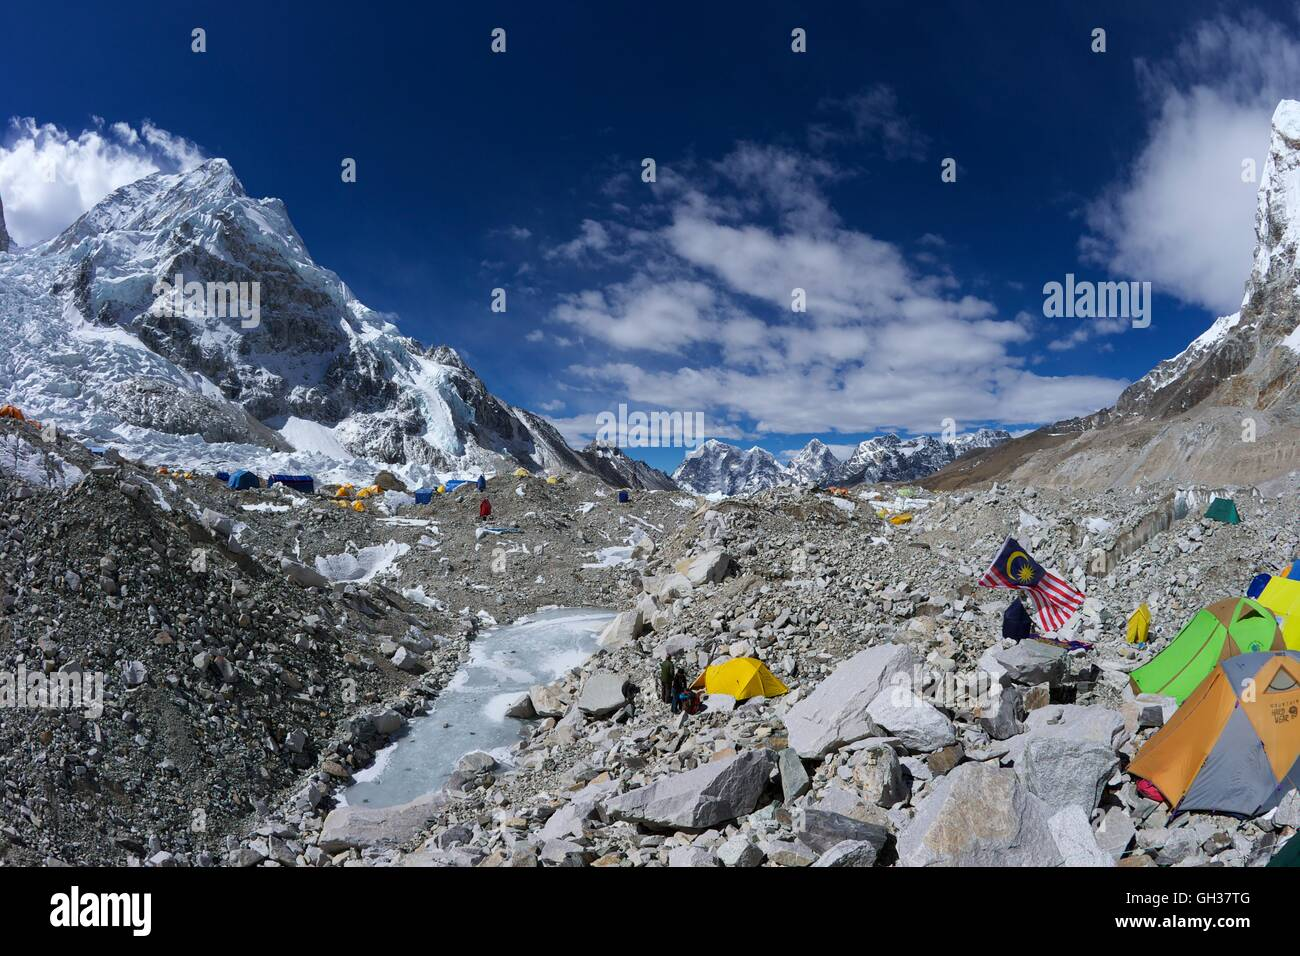 Khumbu icefall from Everest Base Camp, Sagarmatha National Park, Solukhumbu District, Nepal, Asia - Stock Image